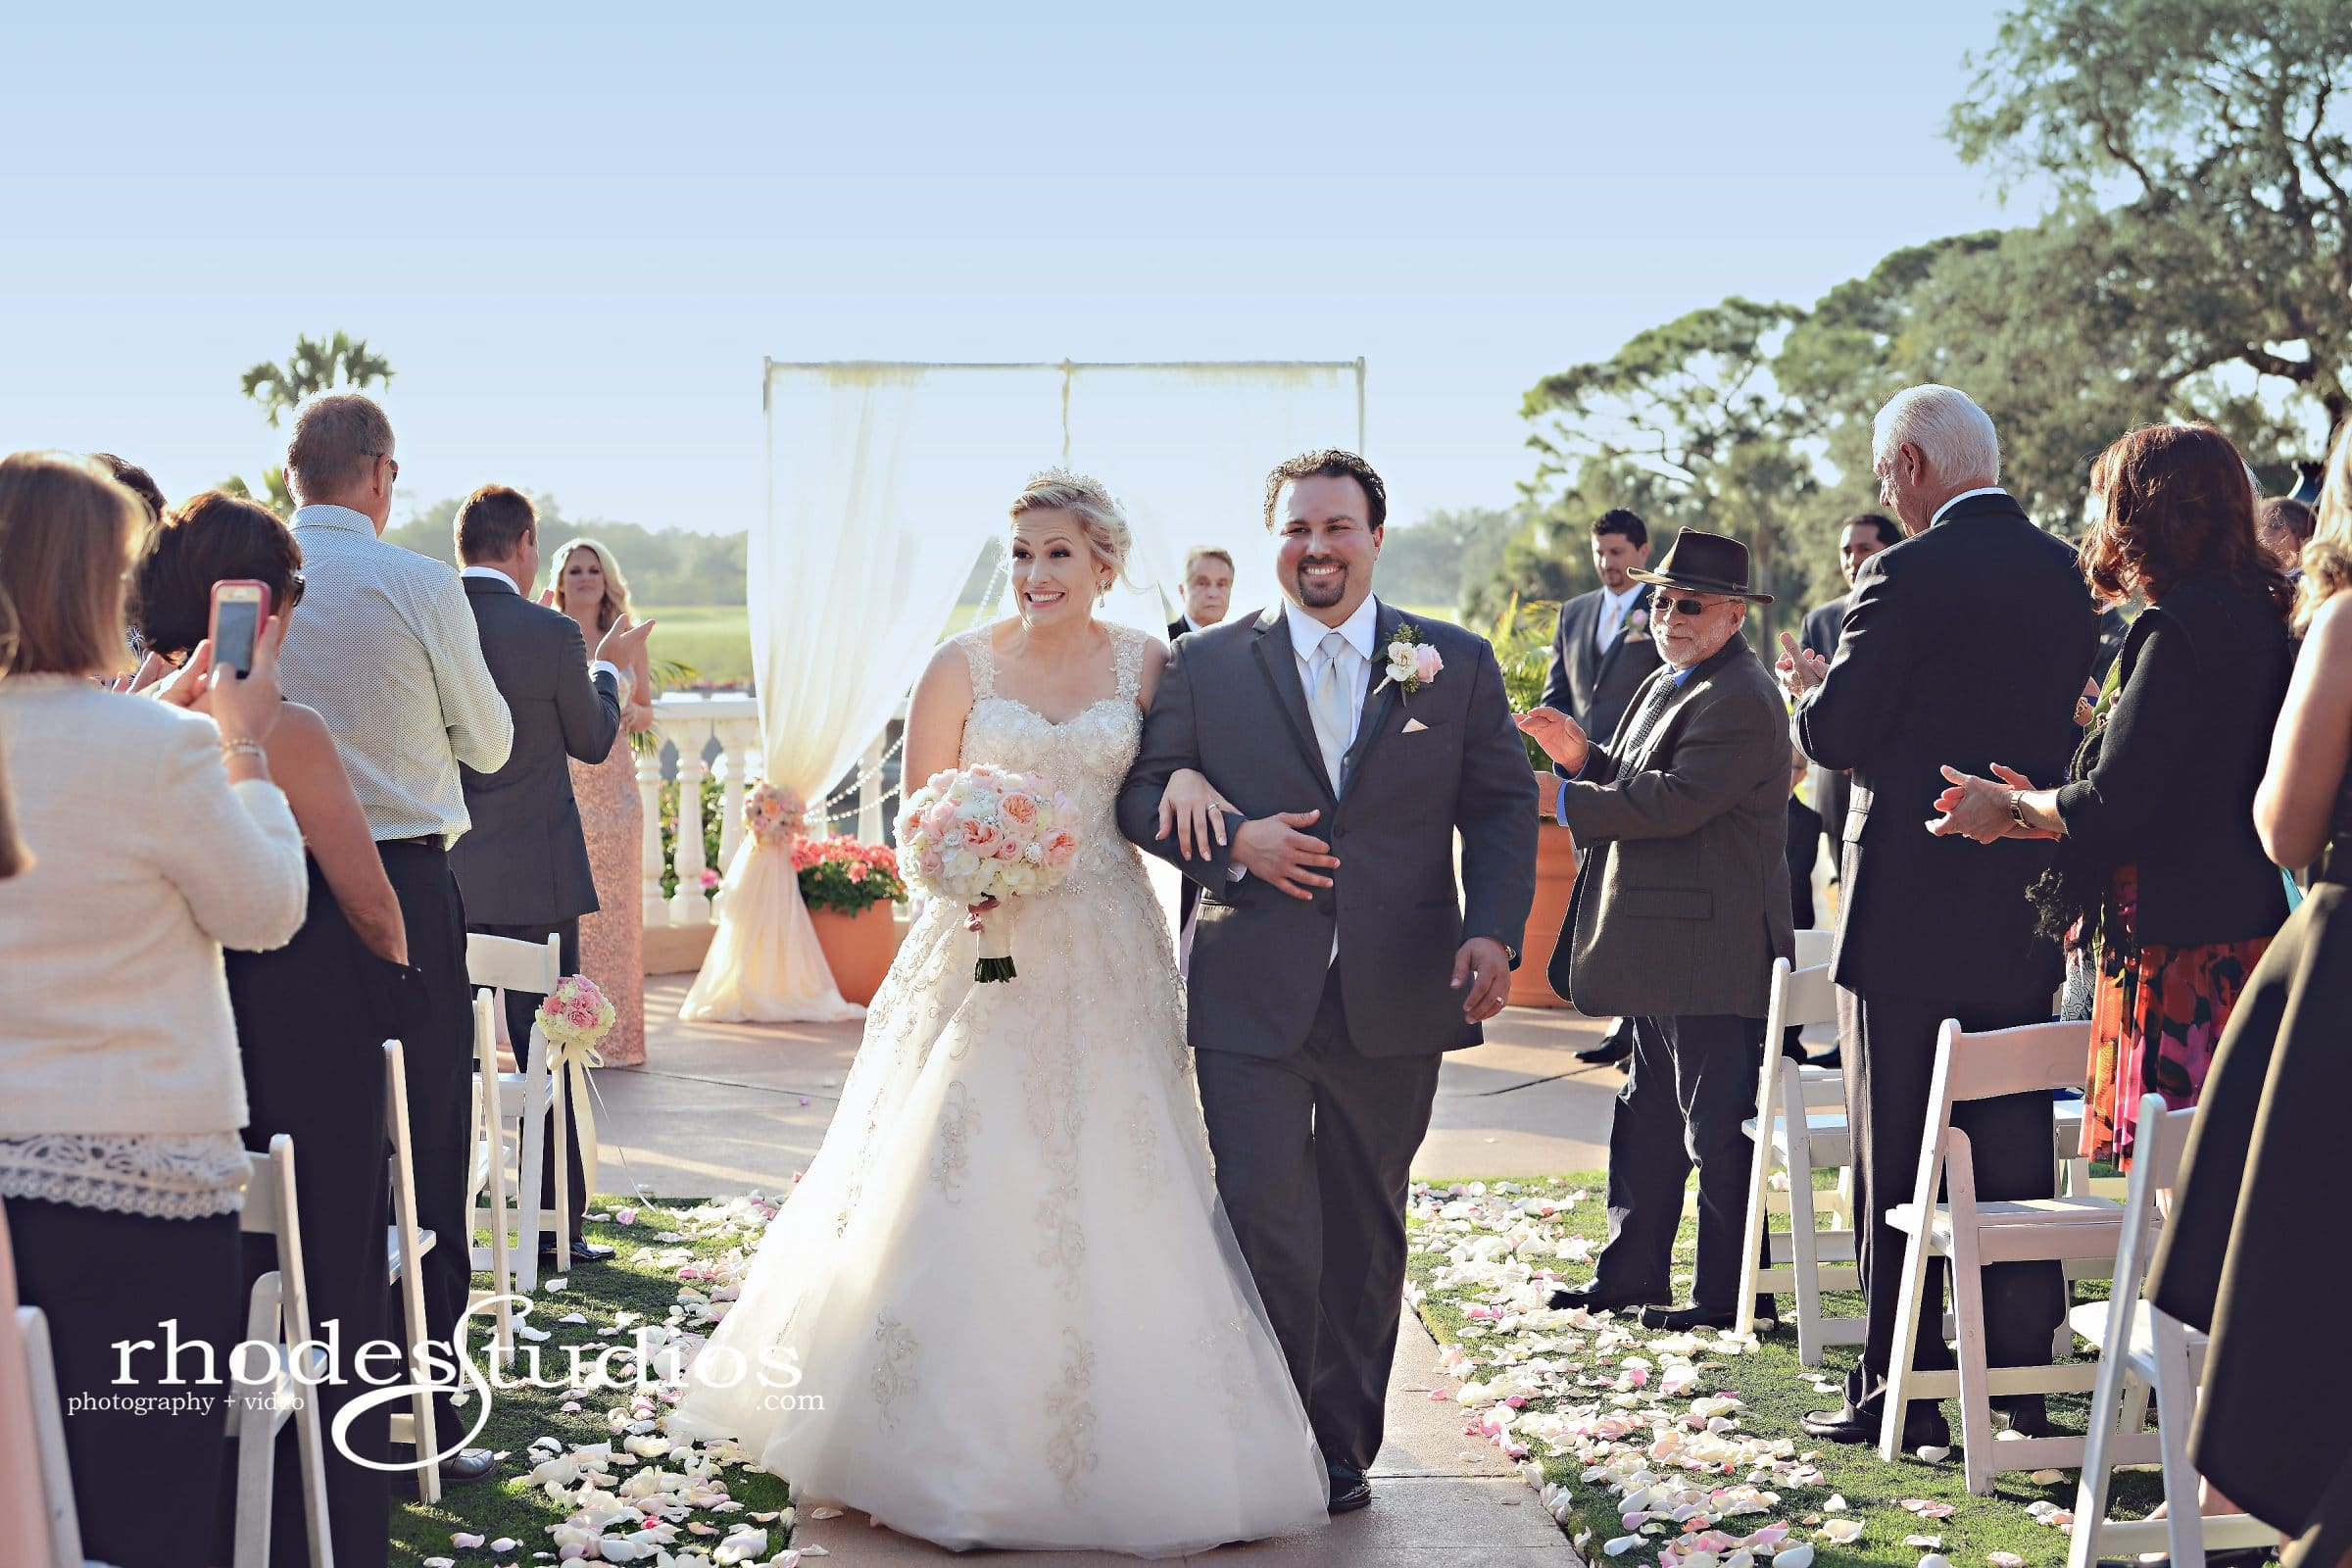 Smiling newlyweds walking down aisle lined with flower petals